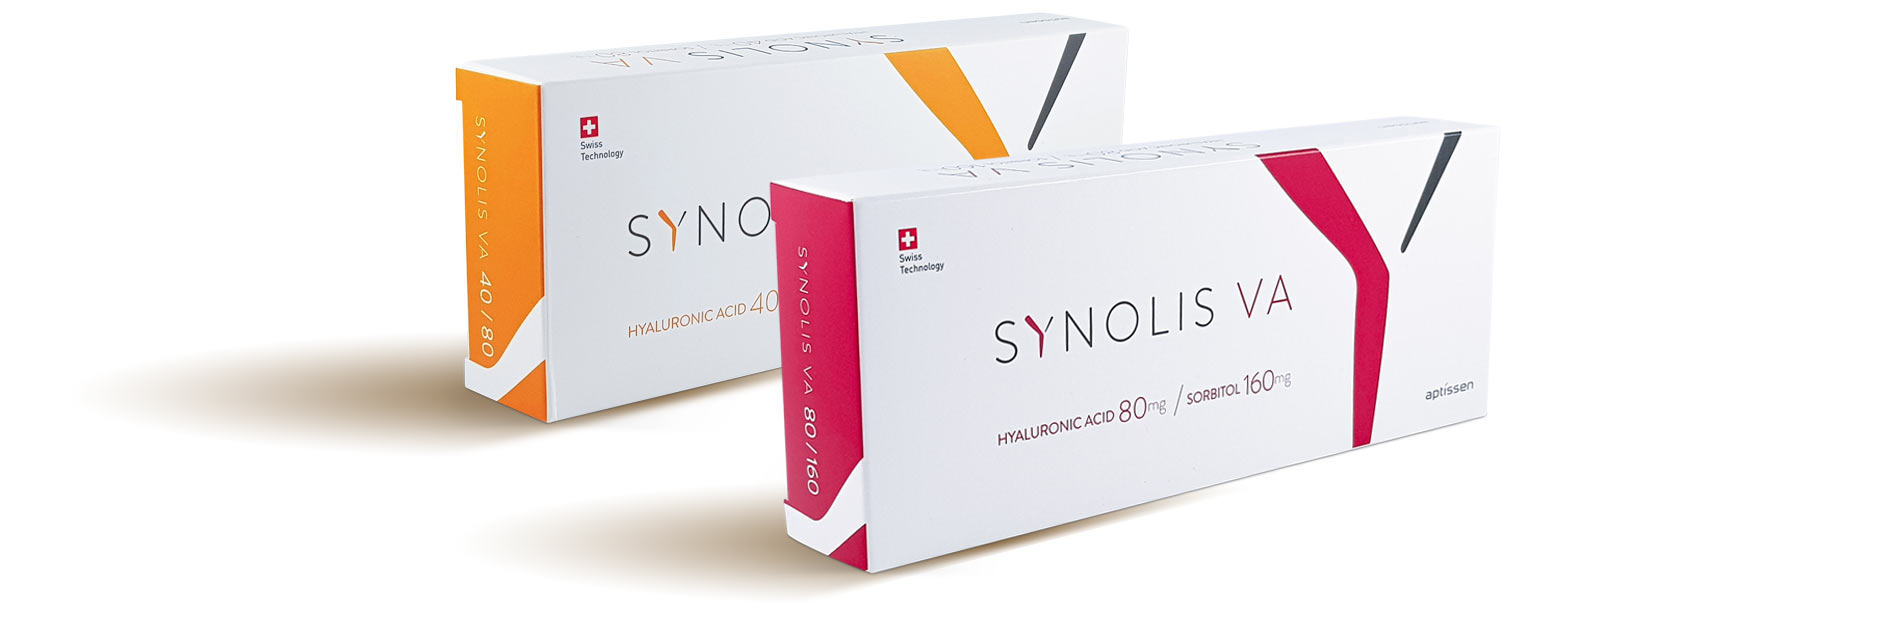 Synolis VA 2ml box and 4ml box